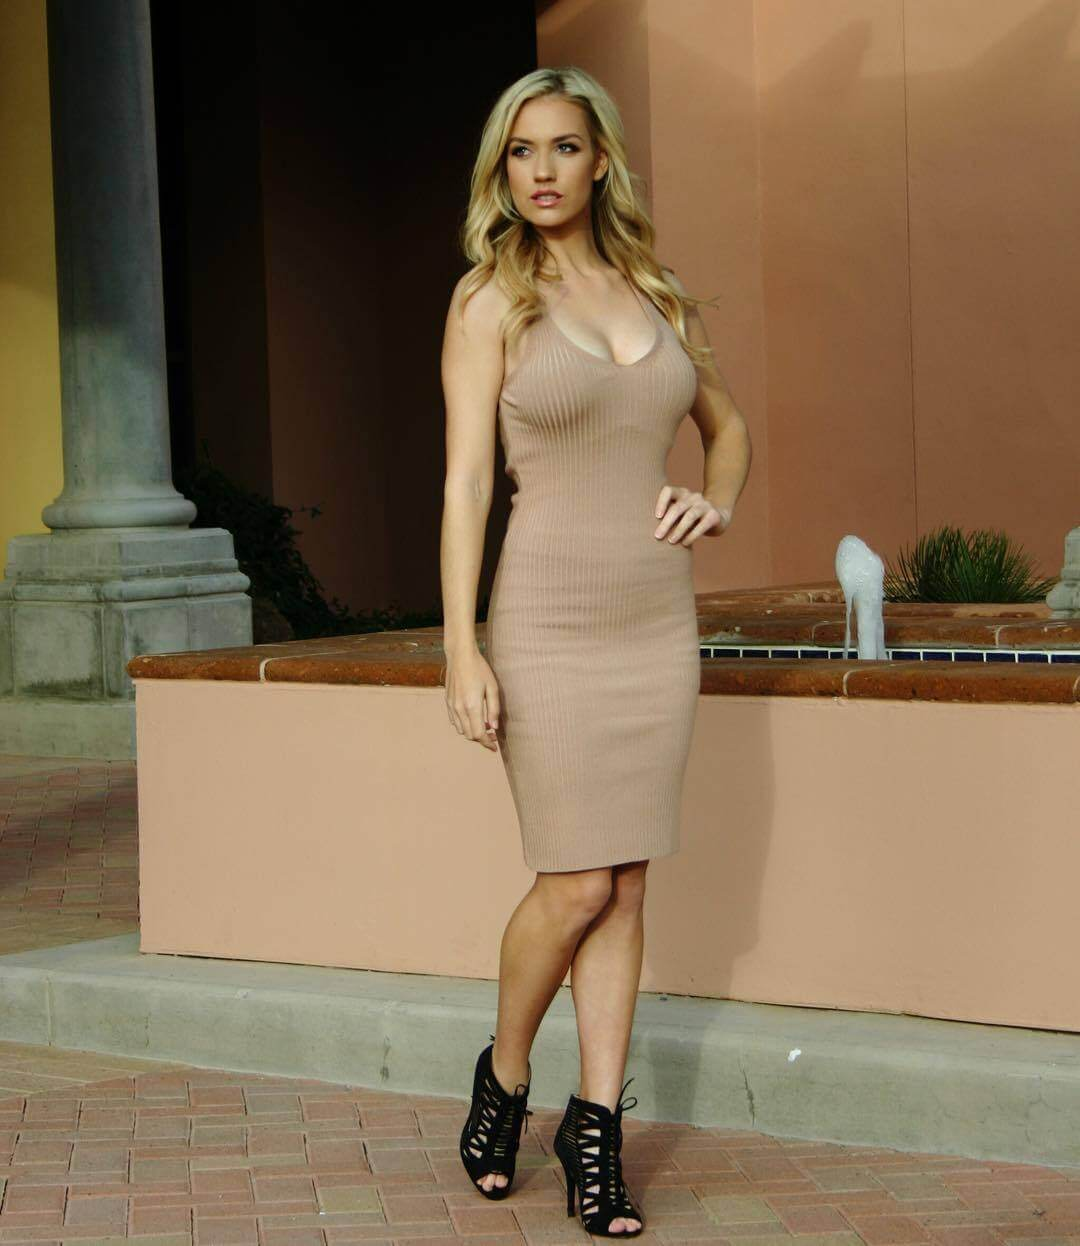 49 Hot Pictures Of Paige Spiranac Which Will Will Make You